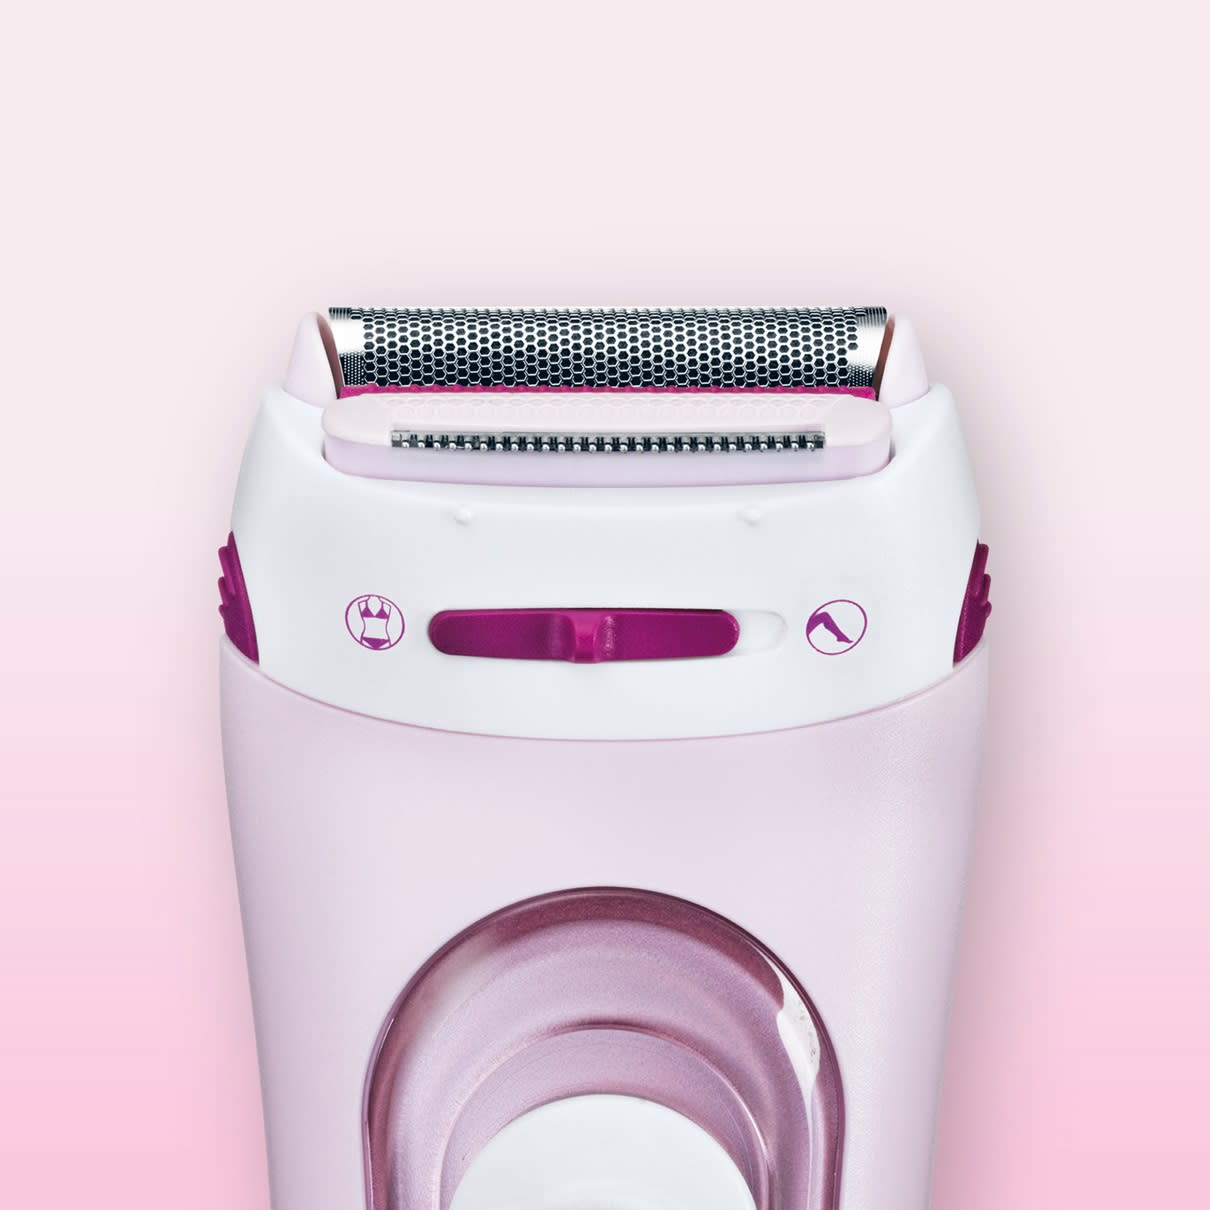 Silk-épil Lady Shaver 5100 beautyshot